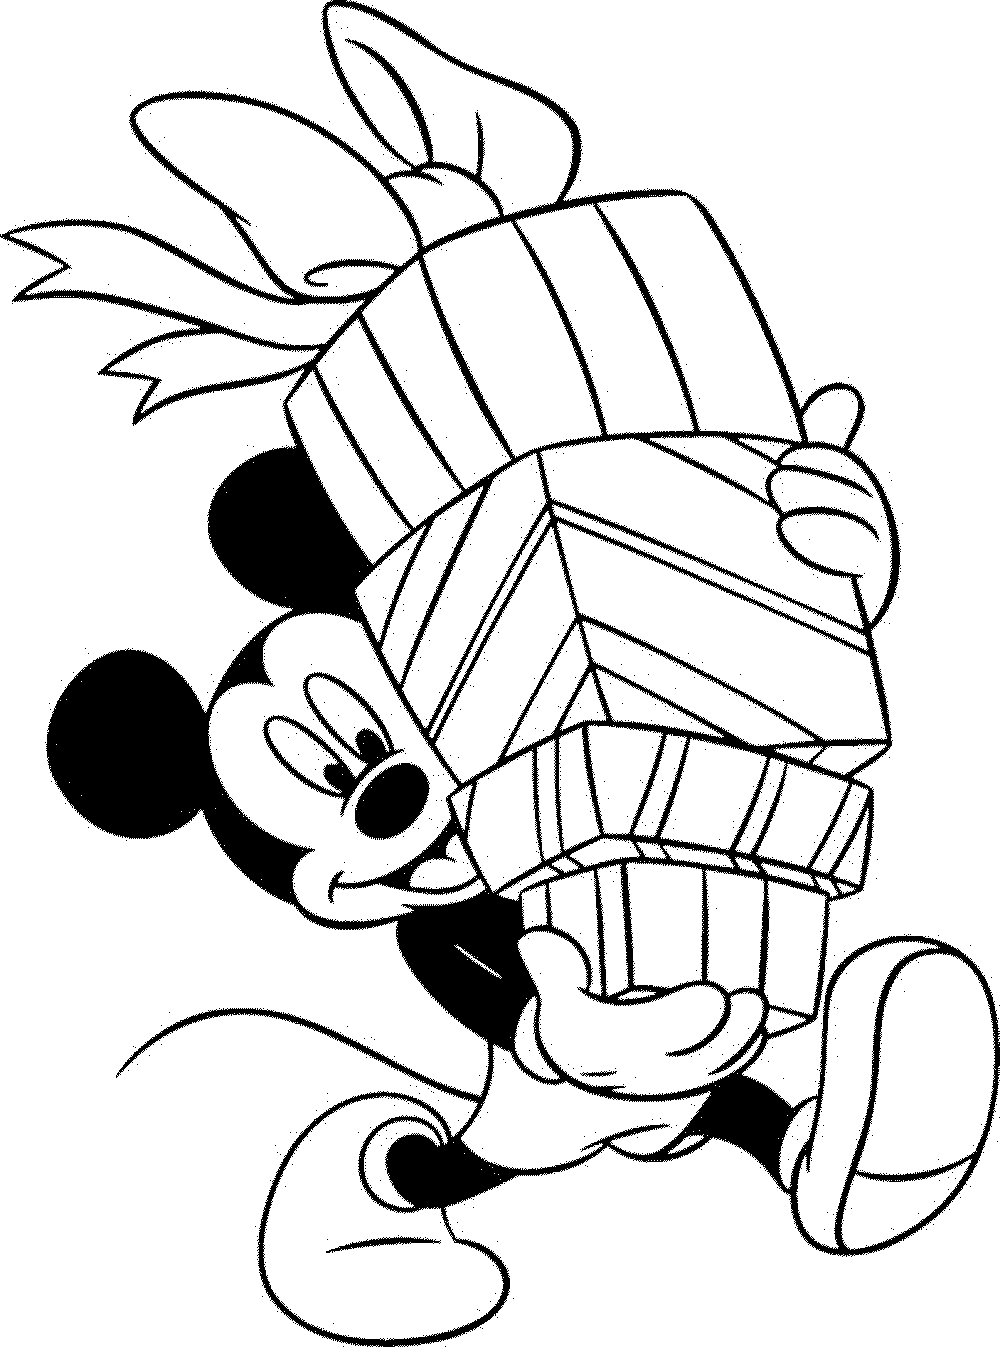 Free Disney Christmas Coloring Pages Printable With Mickey Mouse Pictures Opticanovosti 26956a527d71